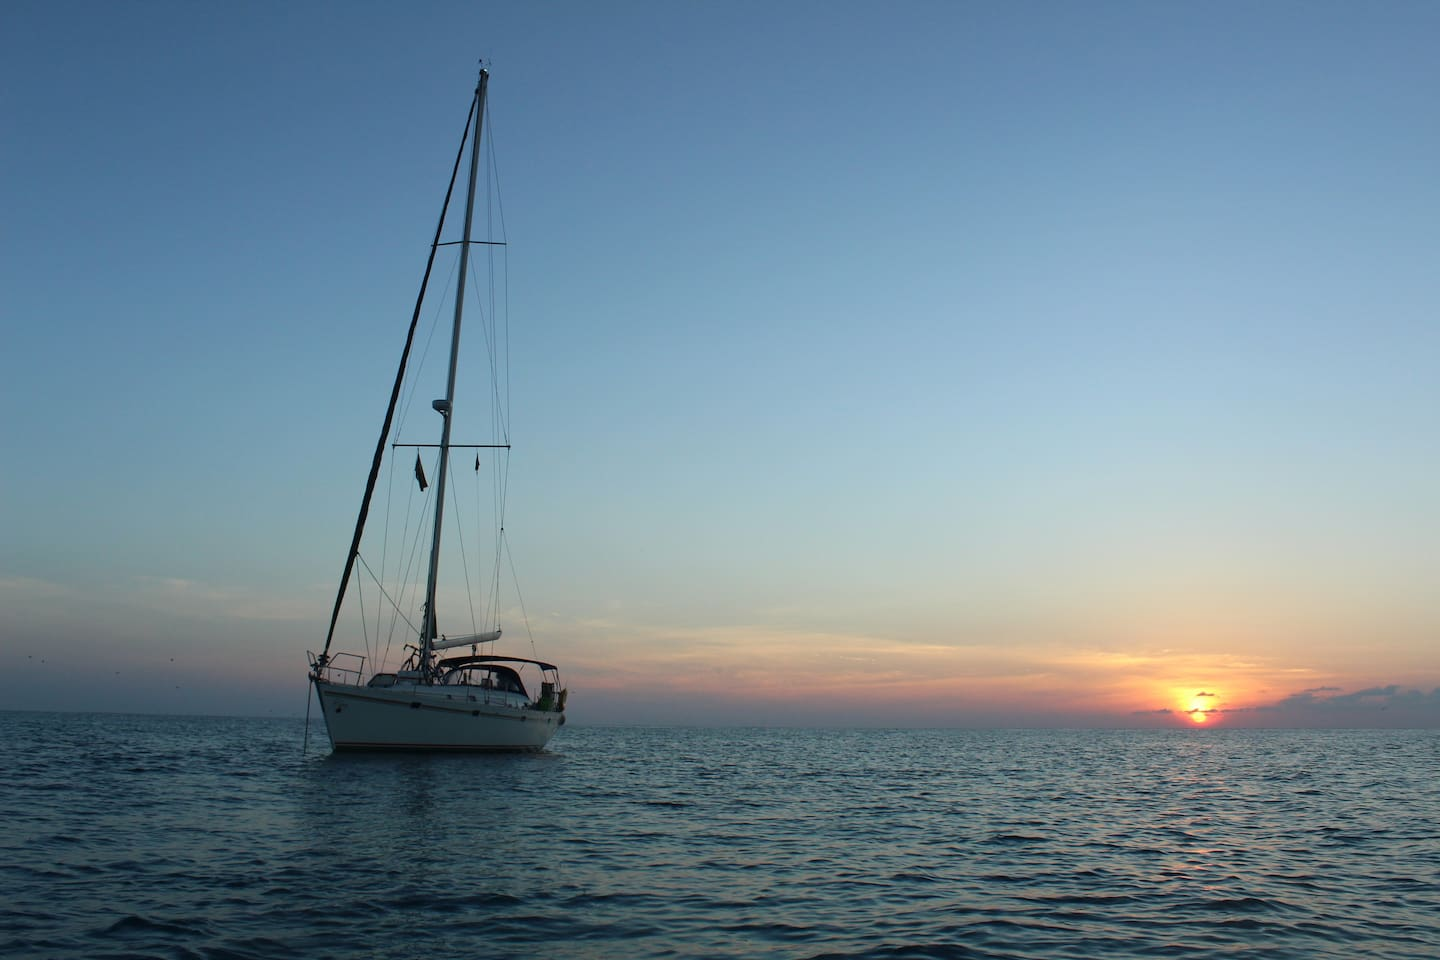 Sunset anchored off Bird Island